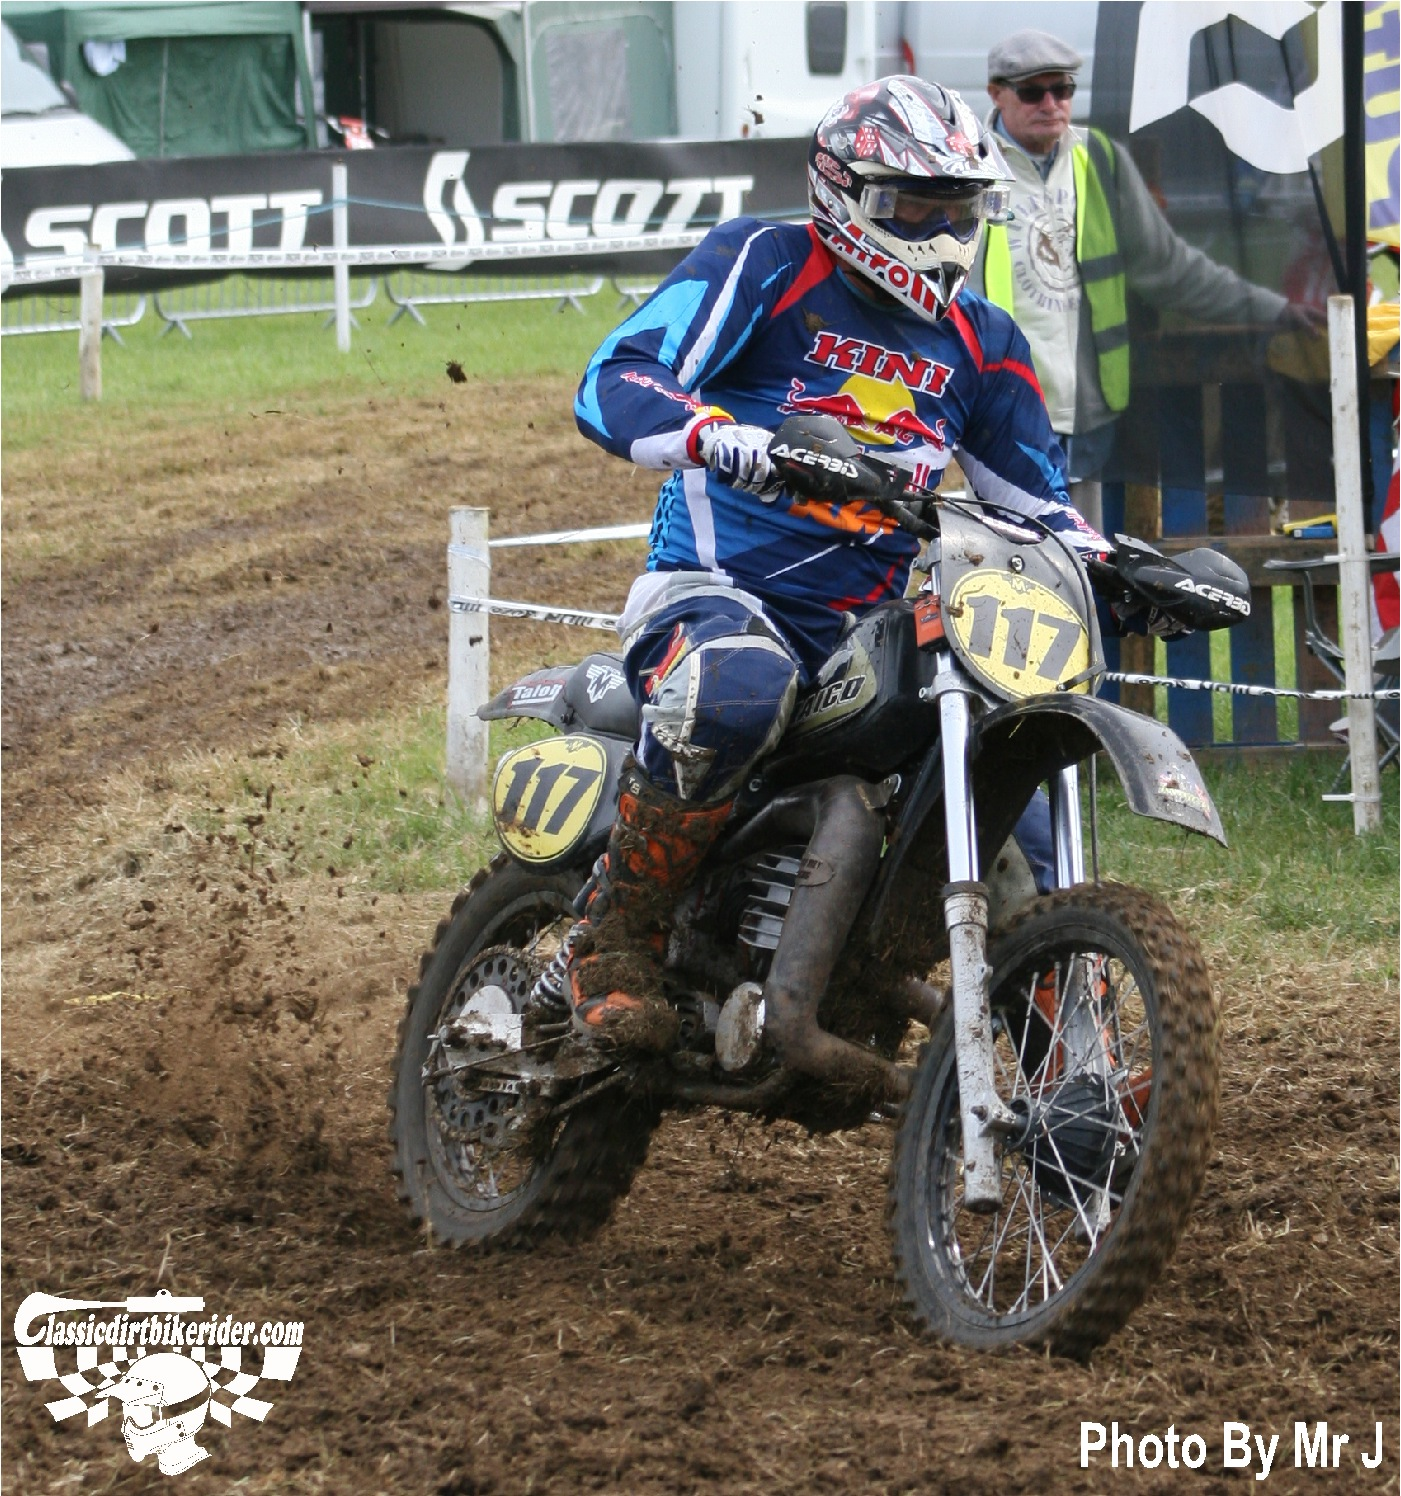 king of the castle 2015 photos Farleigh Castle twinshock motocross classicdirtbikerider.com 131